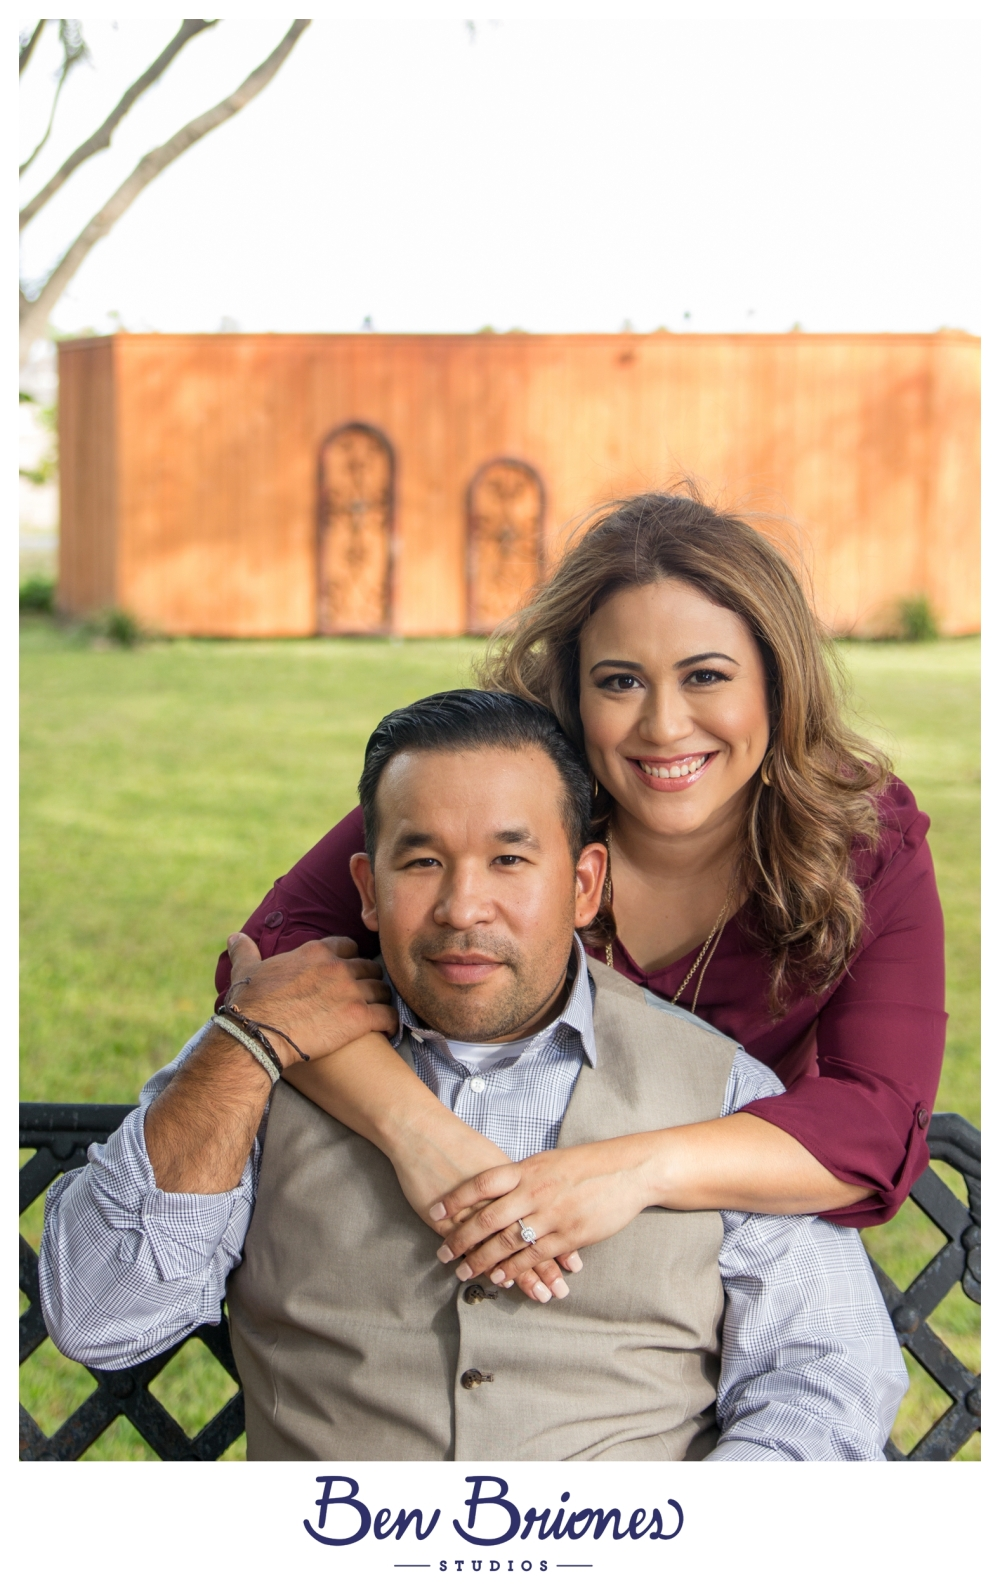 11-05-16_highres_lorrainesandoval-e-session_bbs-05-6_fb